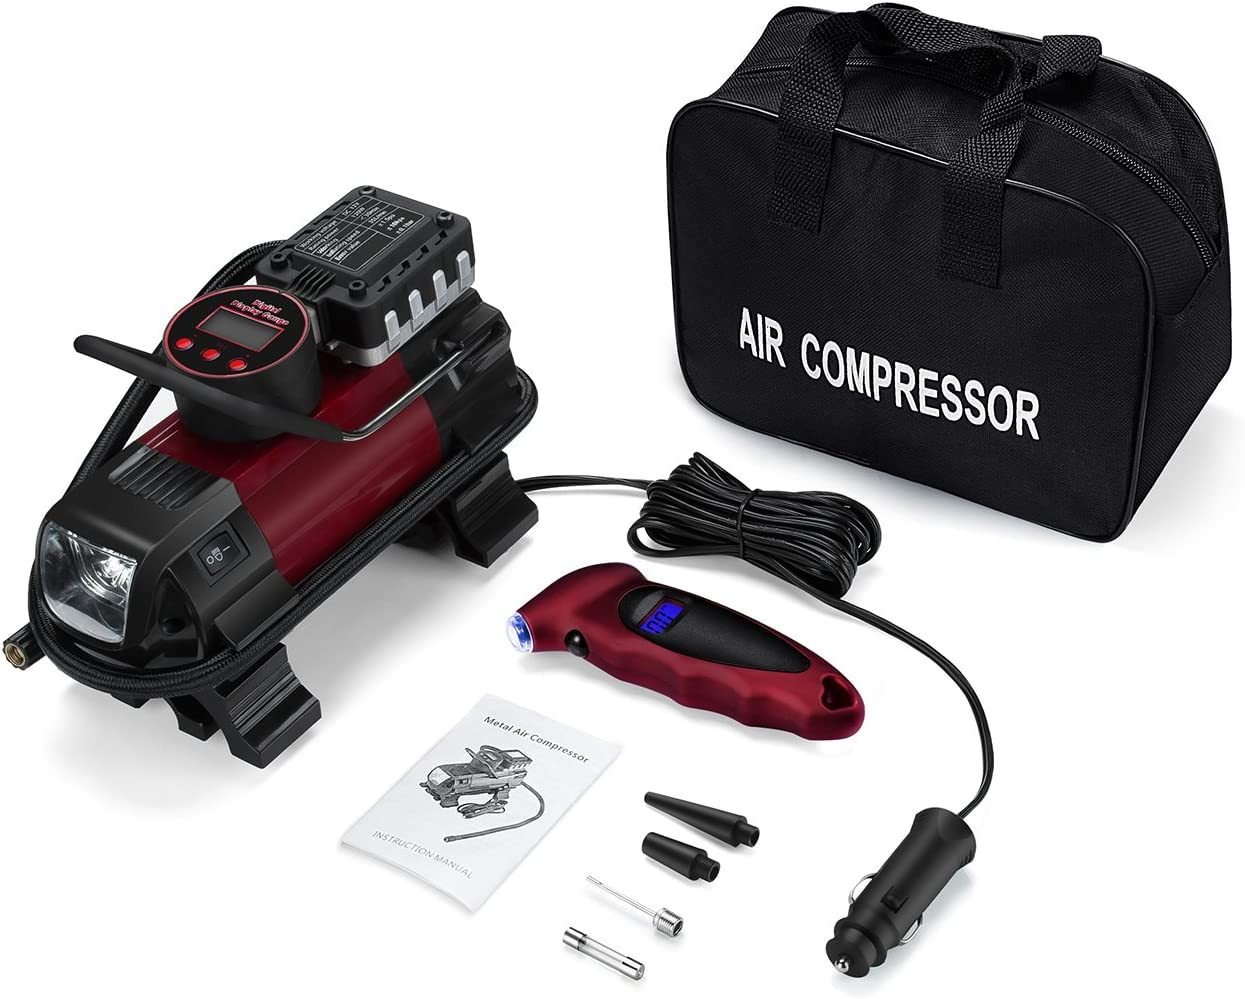 FREE TORCH Worth £9.99 Ring RAC635 Compressor 12v Car Tyre Inflator Pump